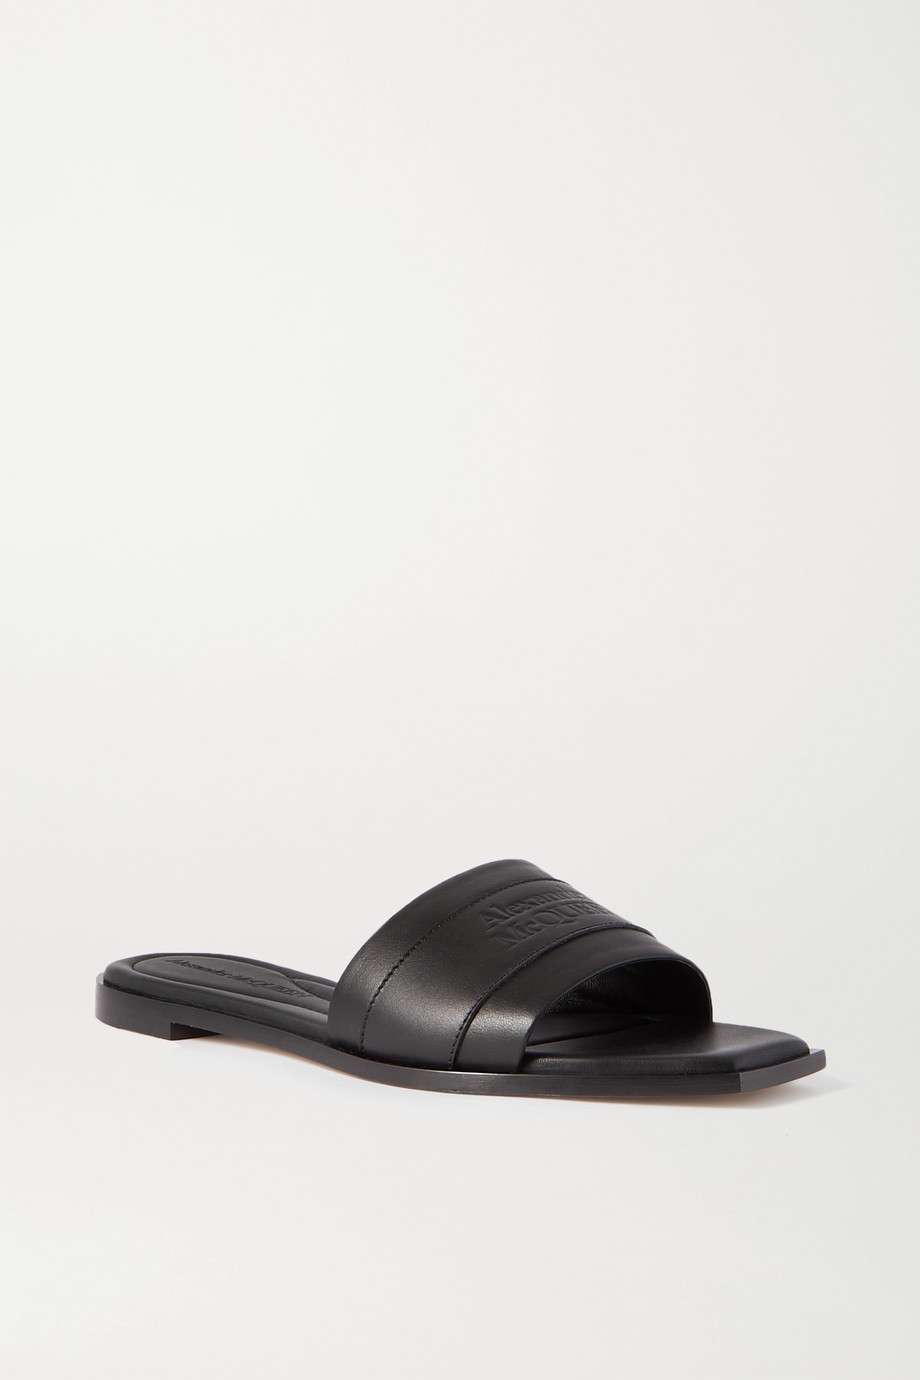 ALEXANDER MCQUEEN Logo-embossed leather slides